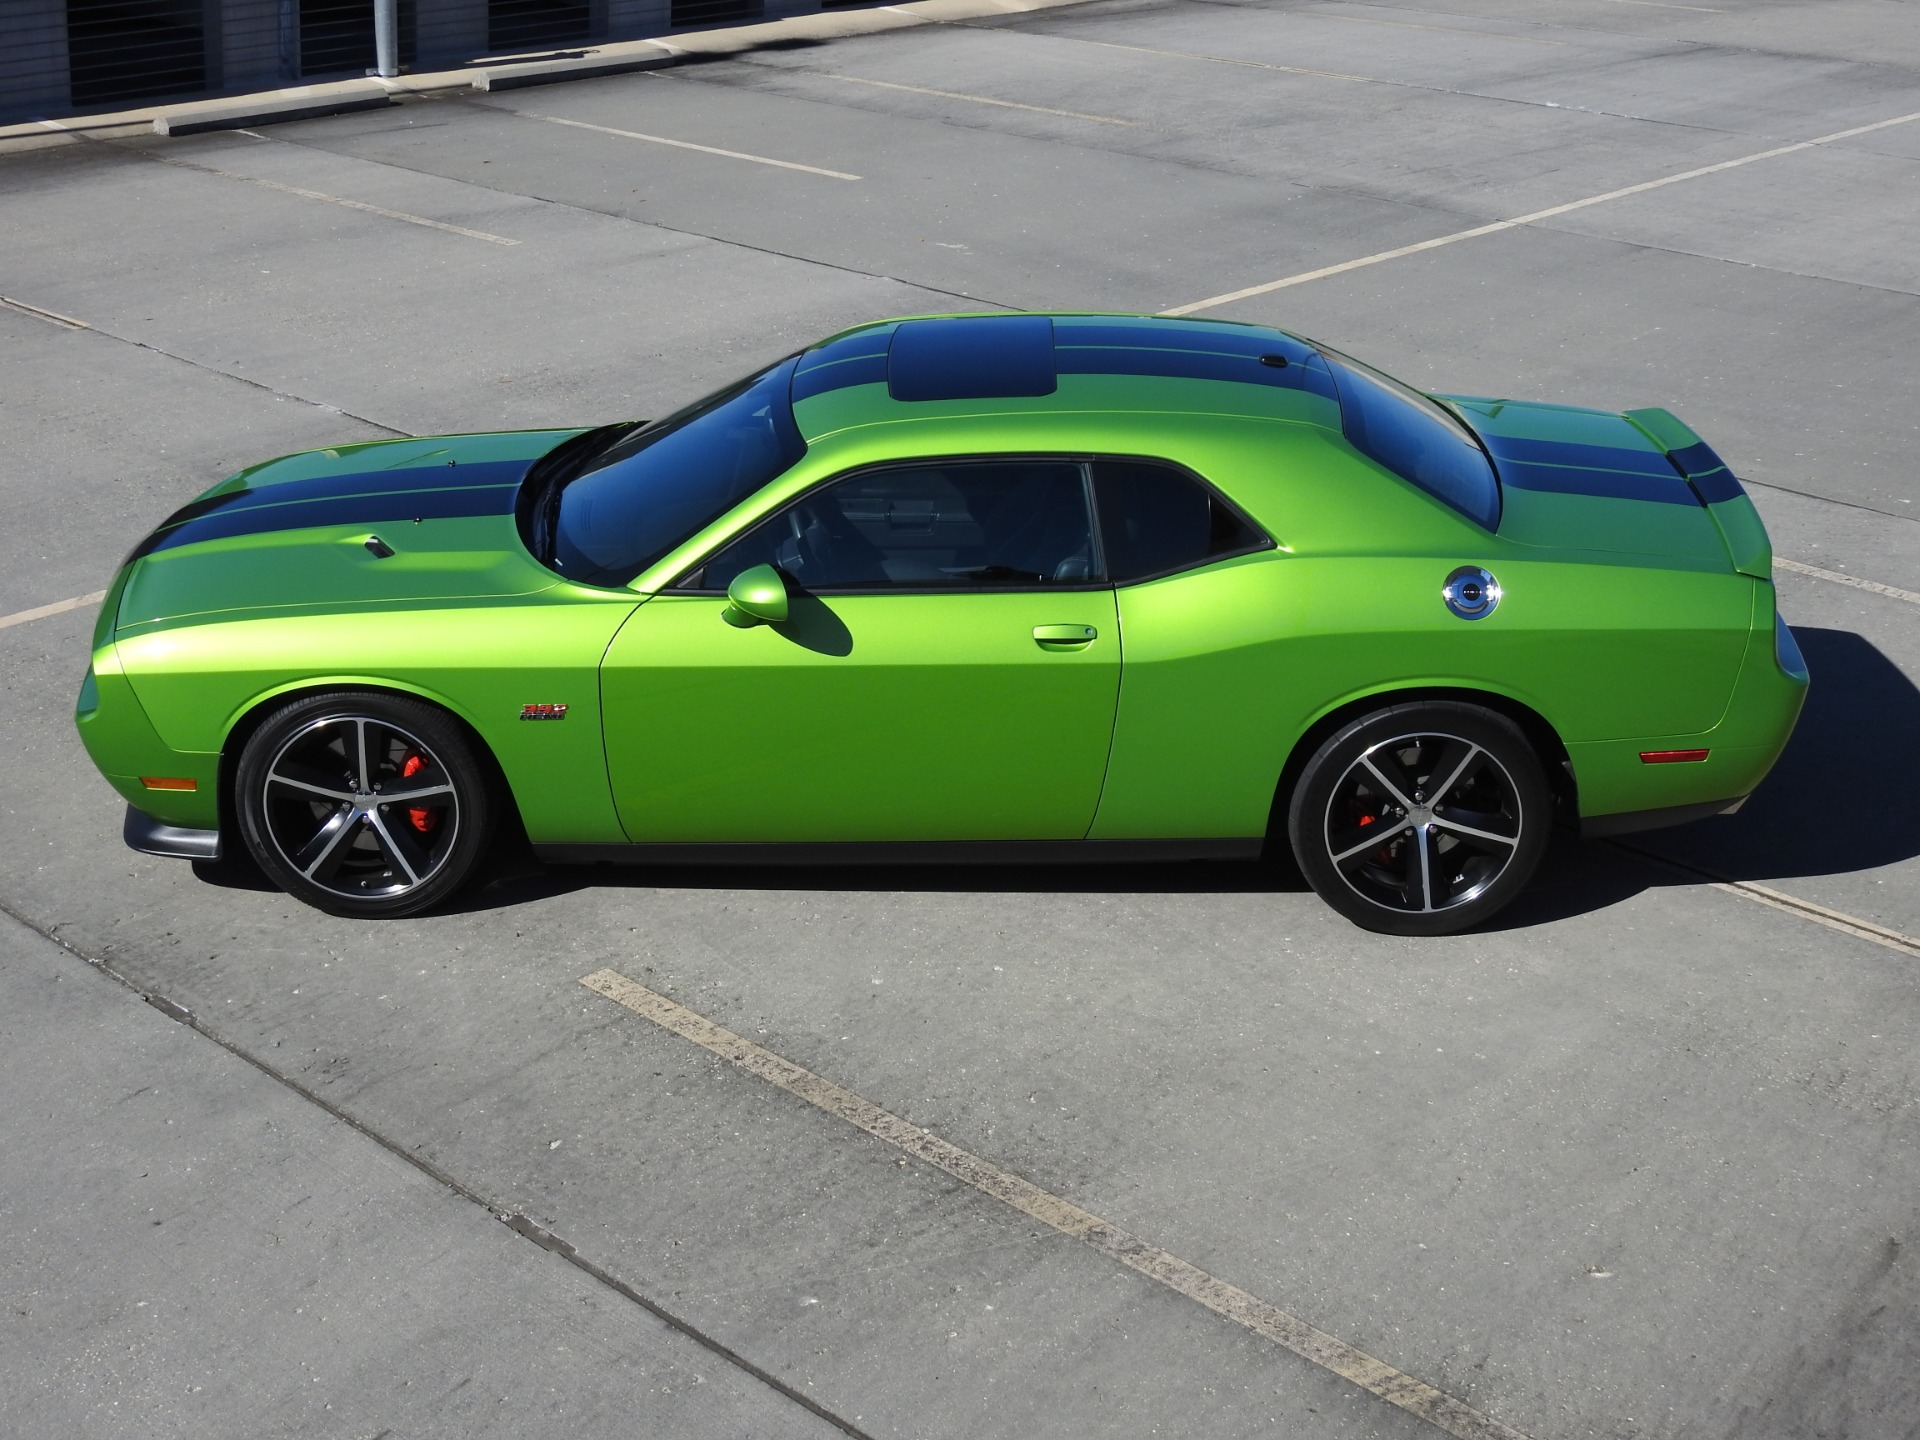 Used-2011-Dodge-Challenger-SRT8-****-BLOWN-HEMI-410-producing-800-HP-****-Jackson-MS